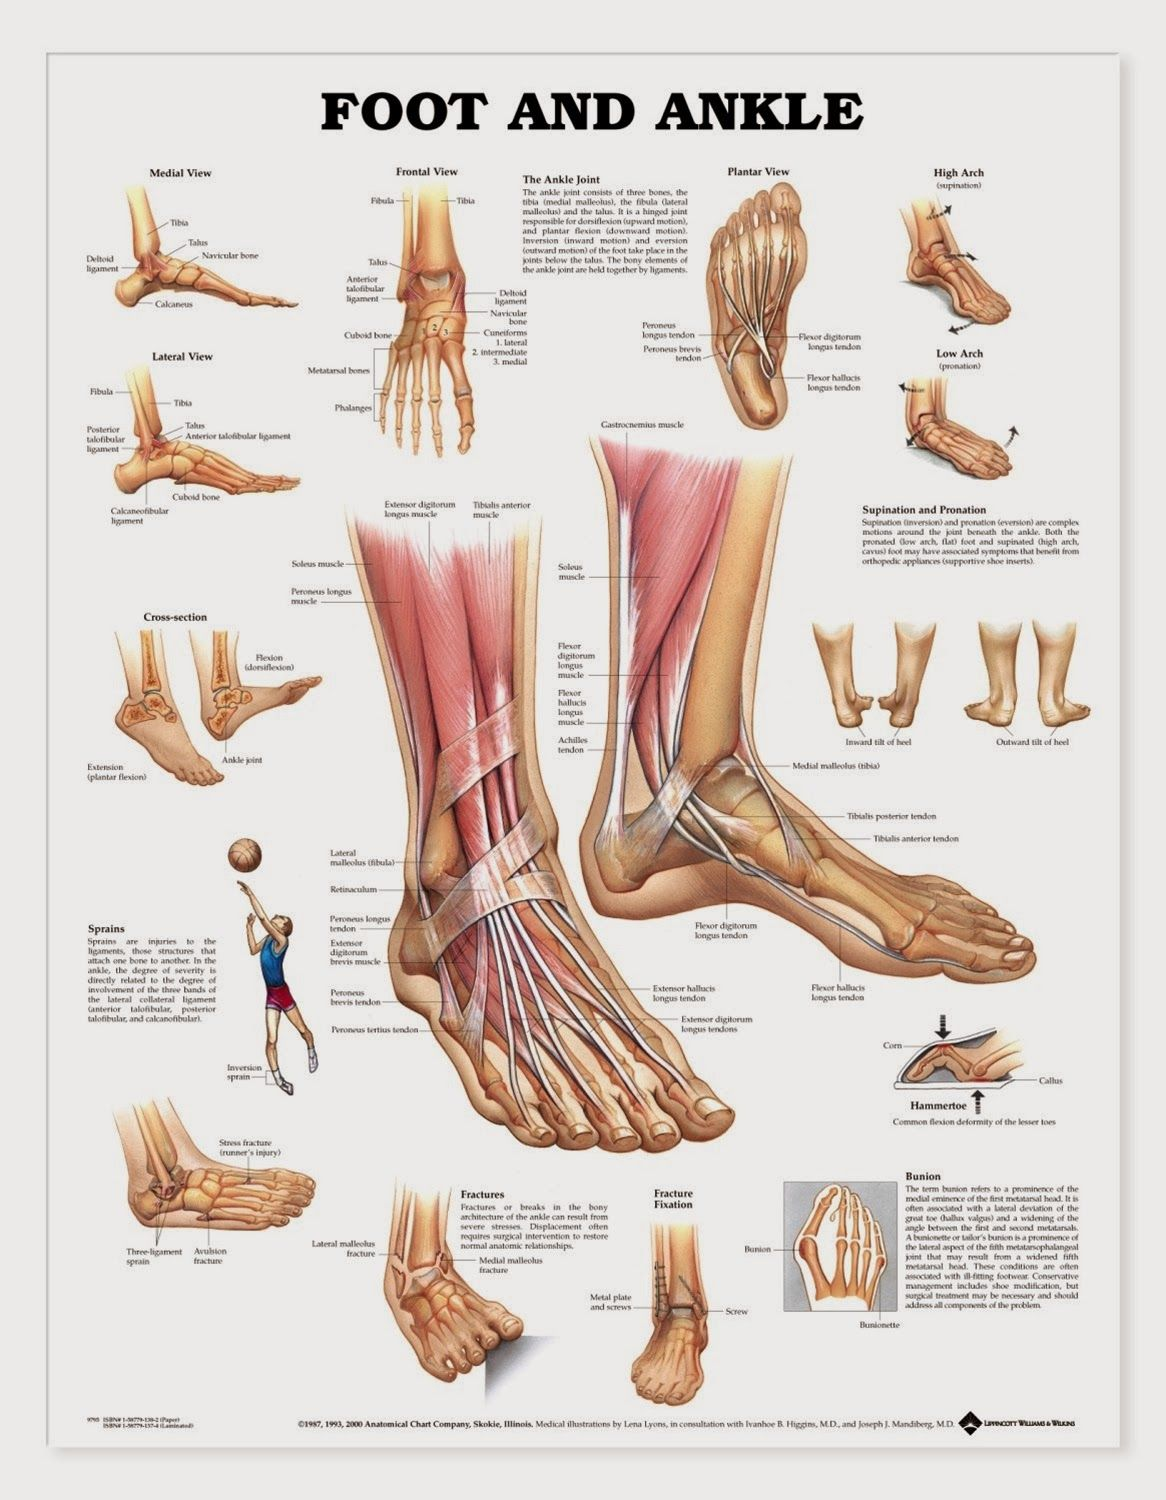 Foot Map Bones Muscles Foot Map Bones Muscles Human Anatomy Charts Ankle Anatomy Muscle Anatomy Foot Anatomy